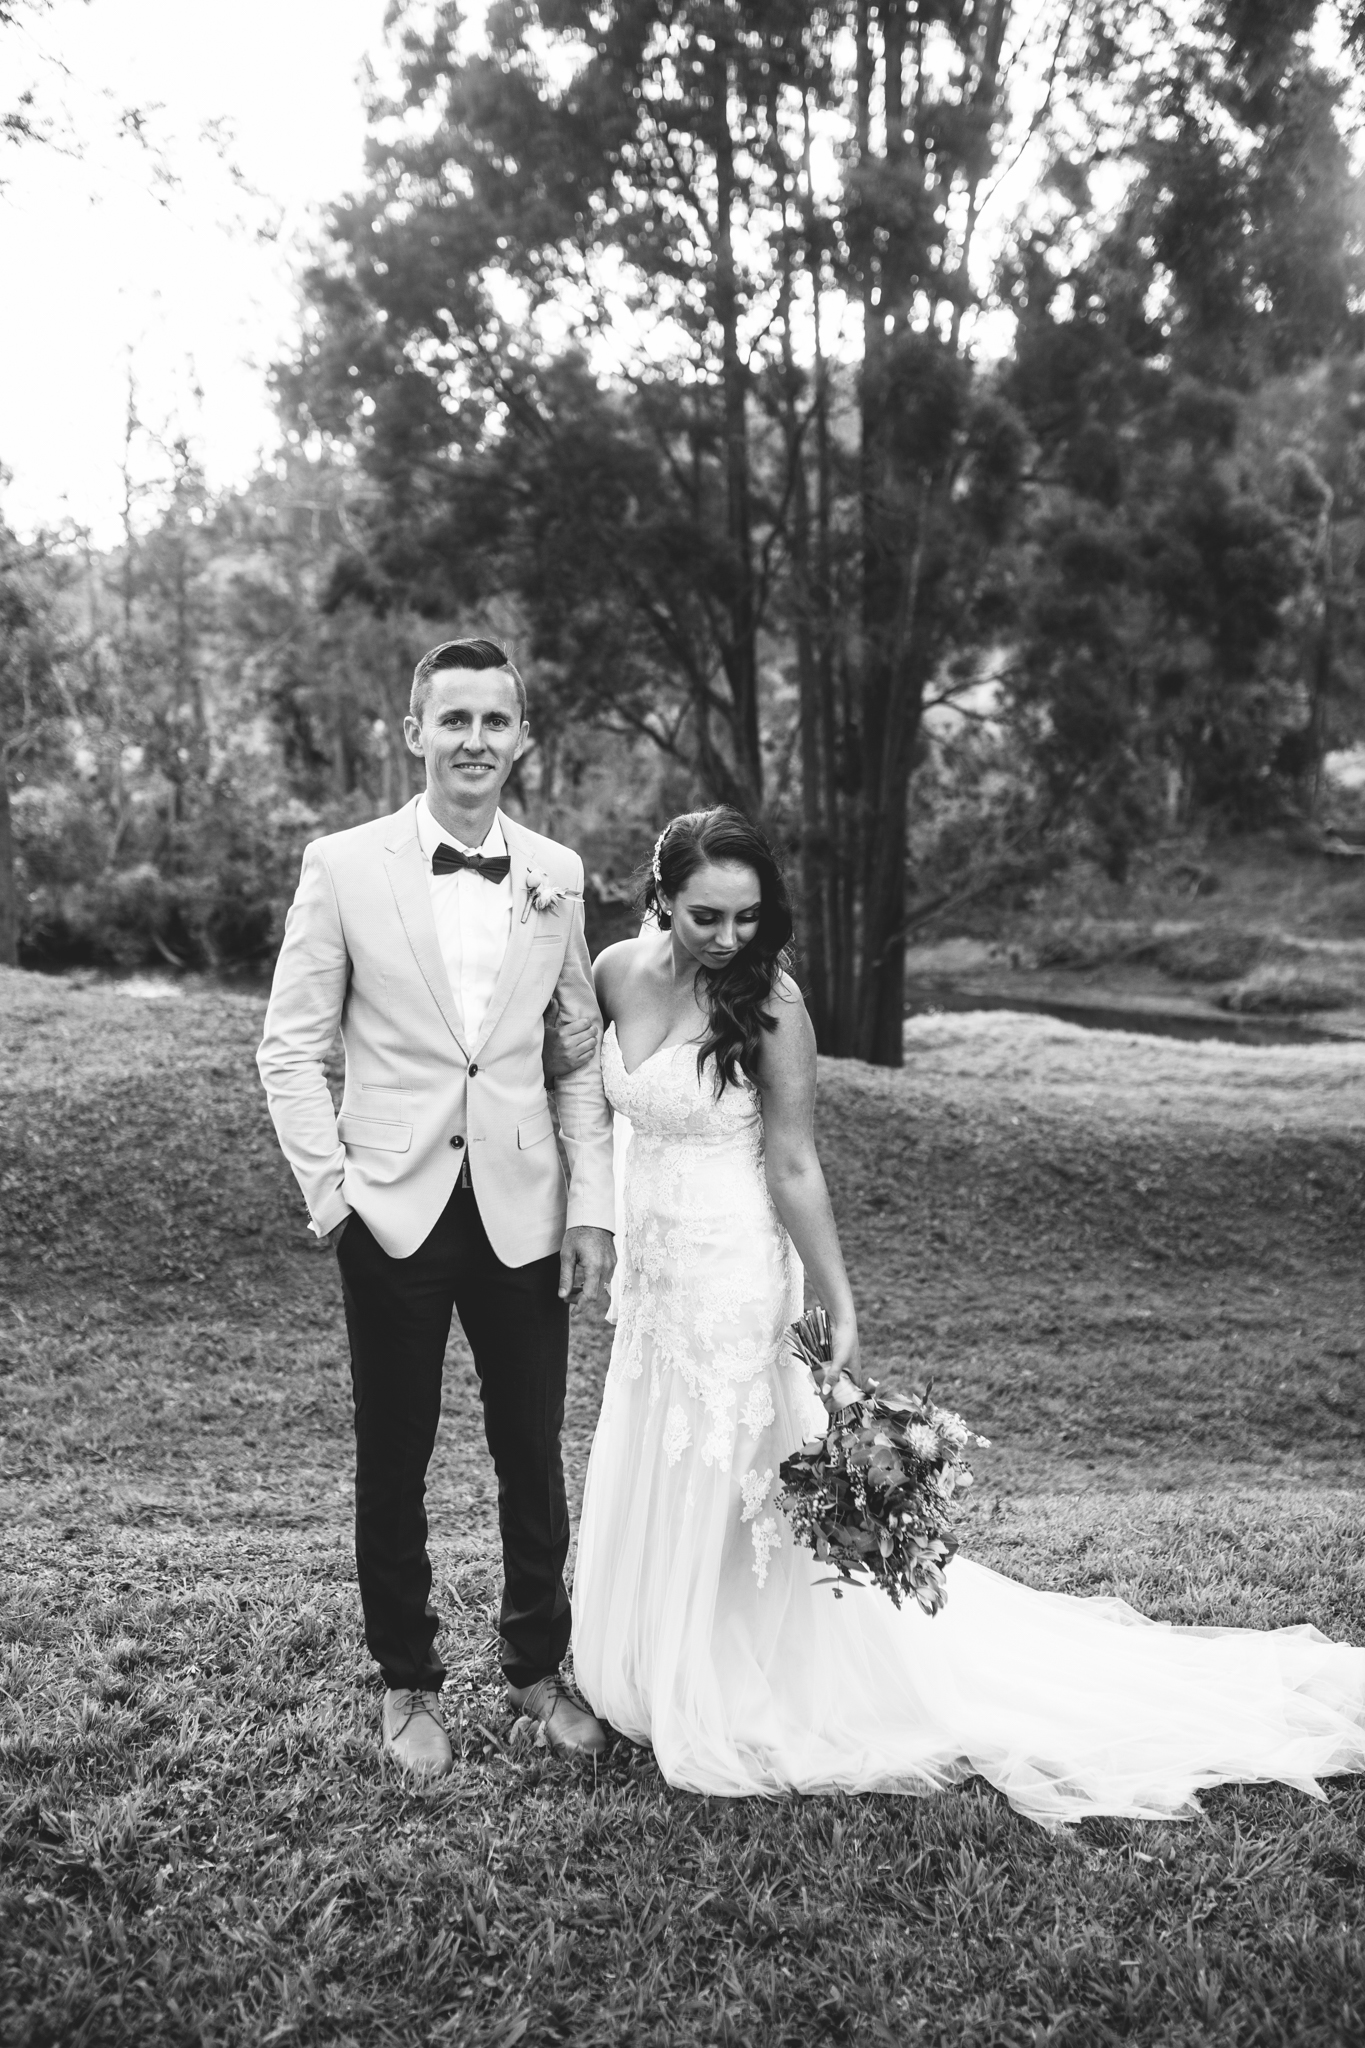 Paul & Selinia's Riverwood Wedding